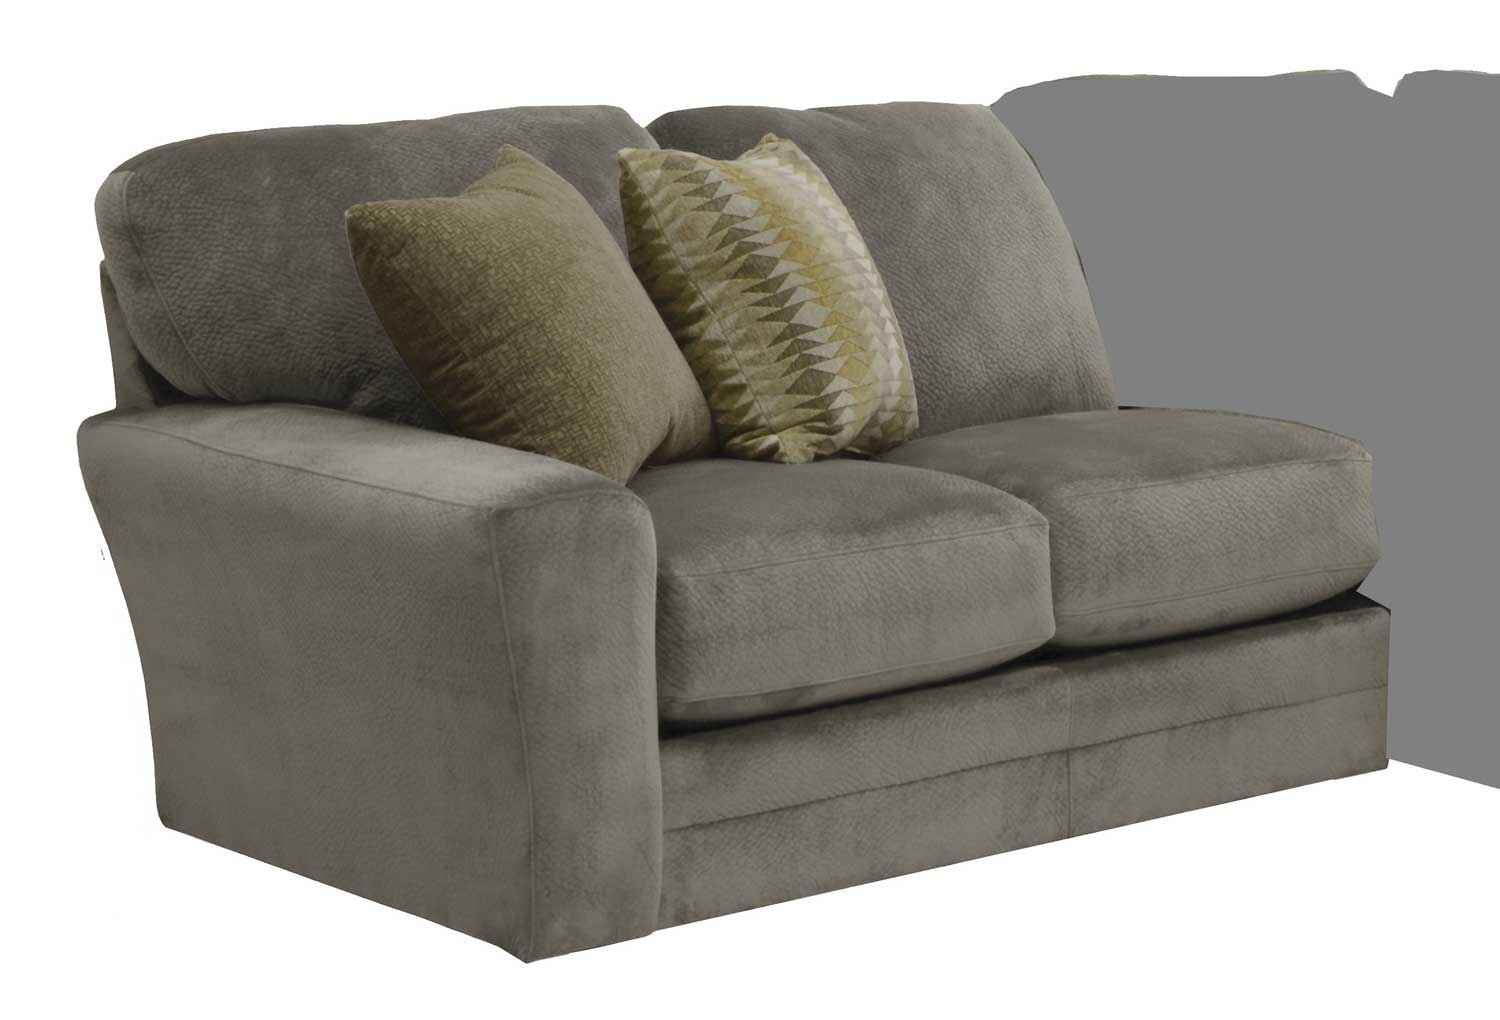 Removable Cover Sofa – Home And Textiles Pertaining To Sofas With Removable Cover (View 6 of 10)